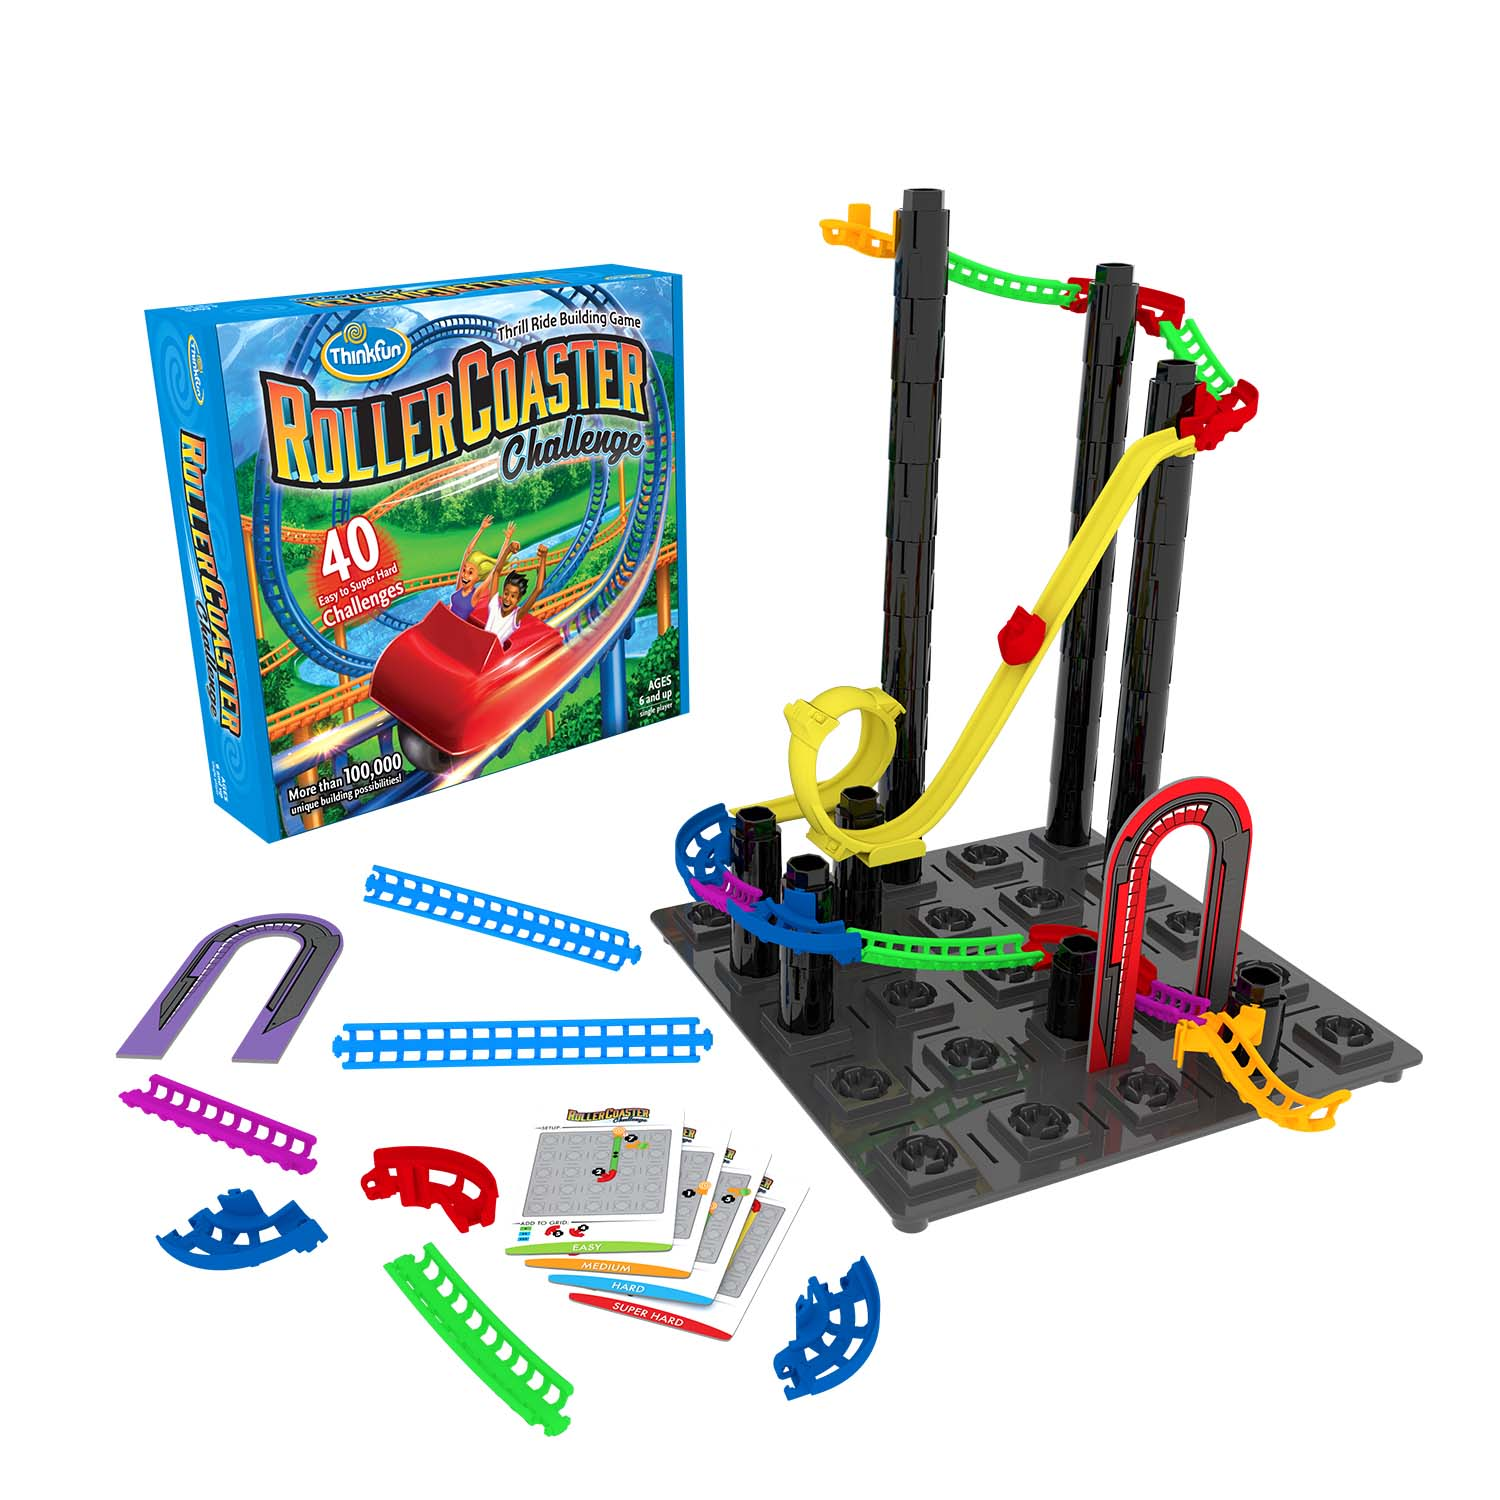 construx roller coaster instructions pdf